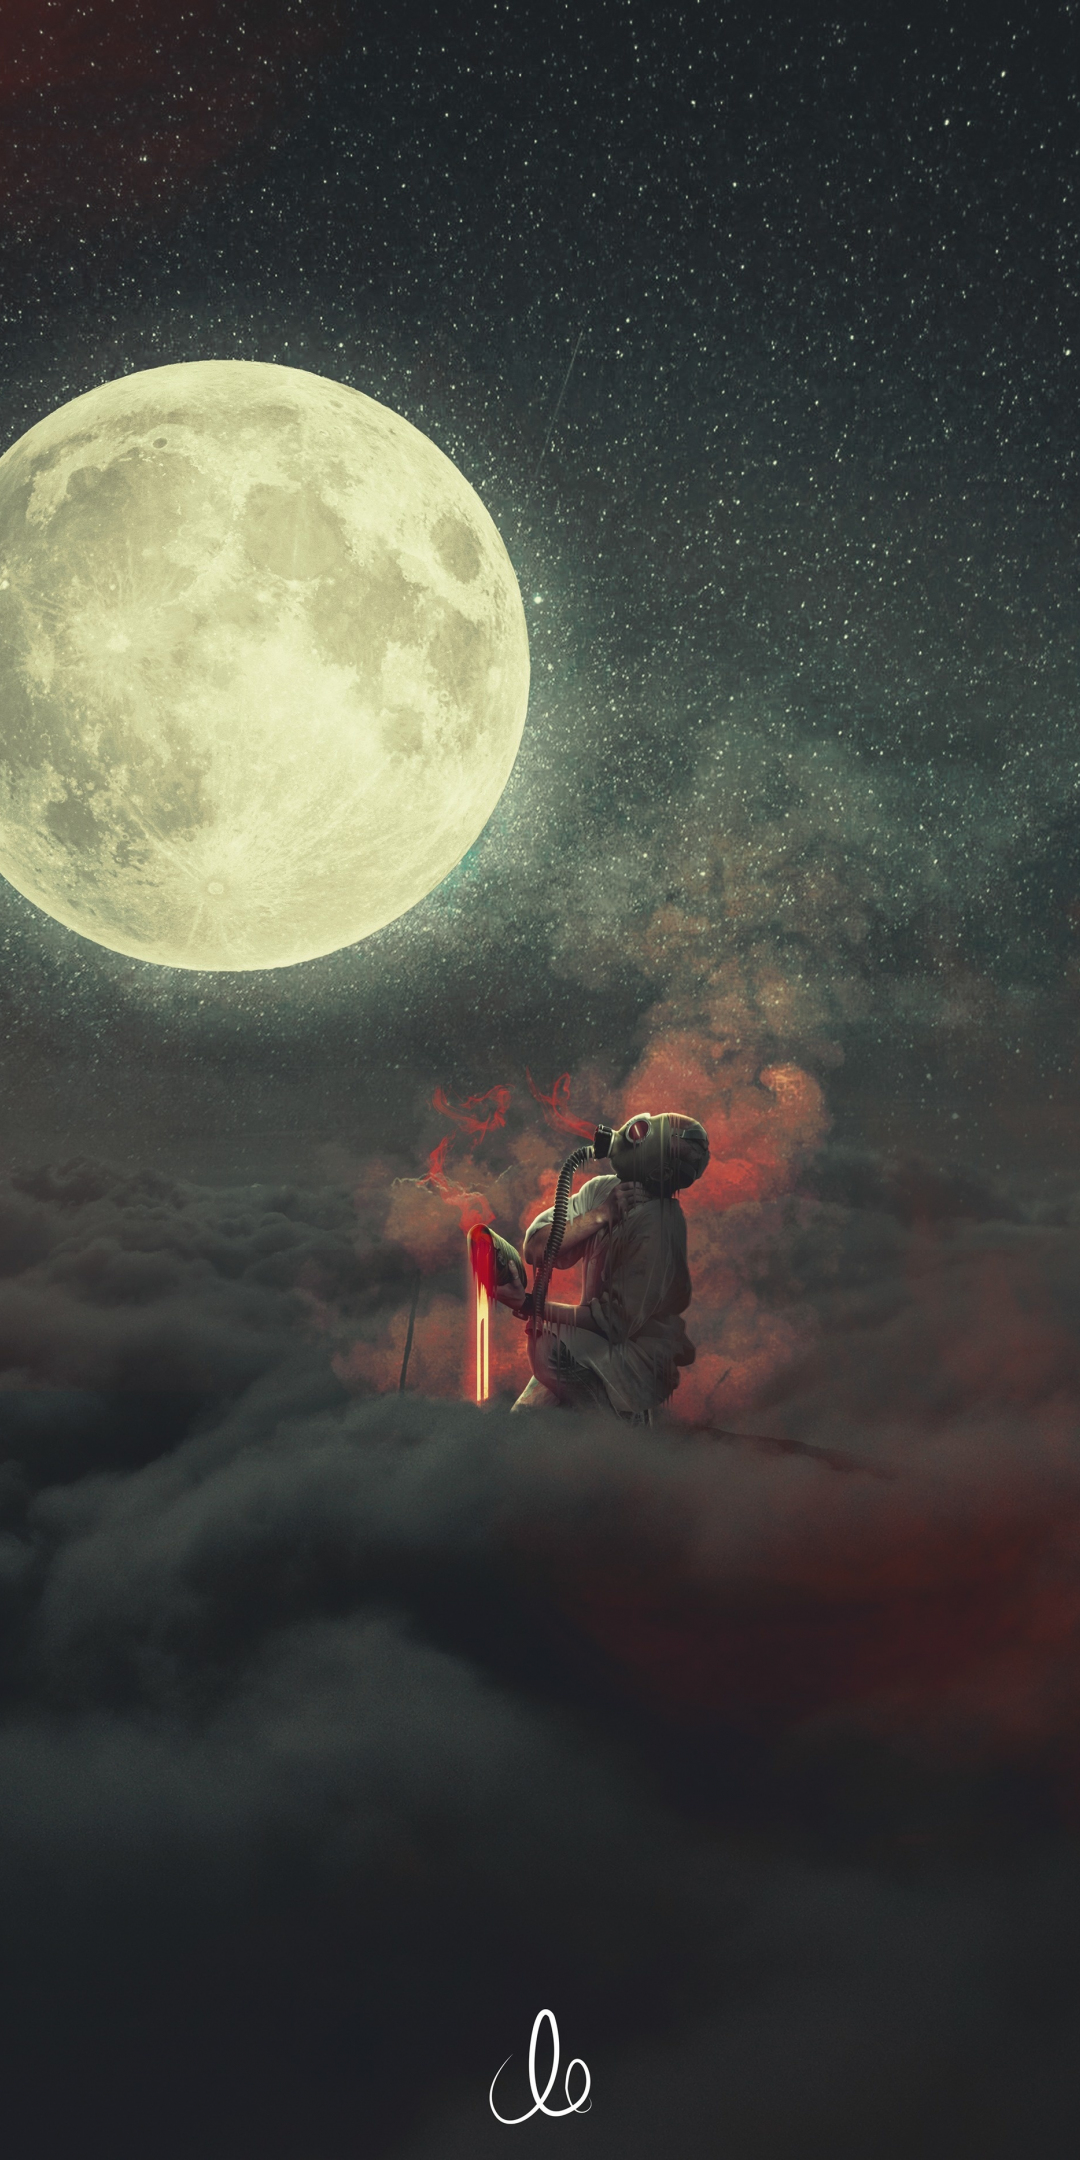 Download 1080x2160 Wallpaper Demon Dream Clouds Moon Fantasy Honor 7x Honor 9 Lite Honor View 10 Hd Image Background 4740